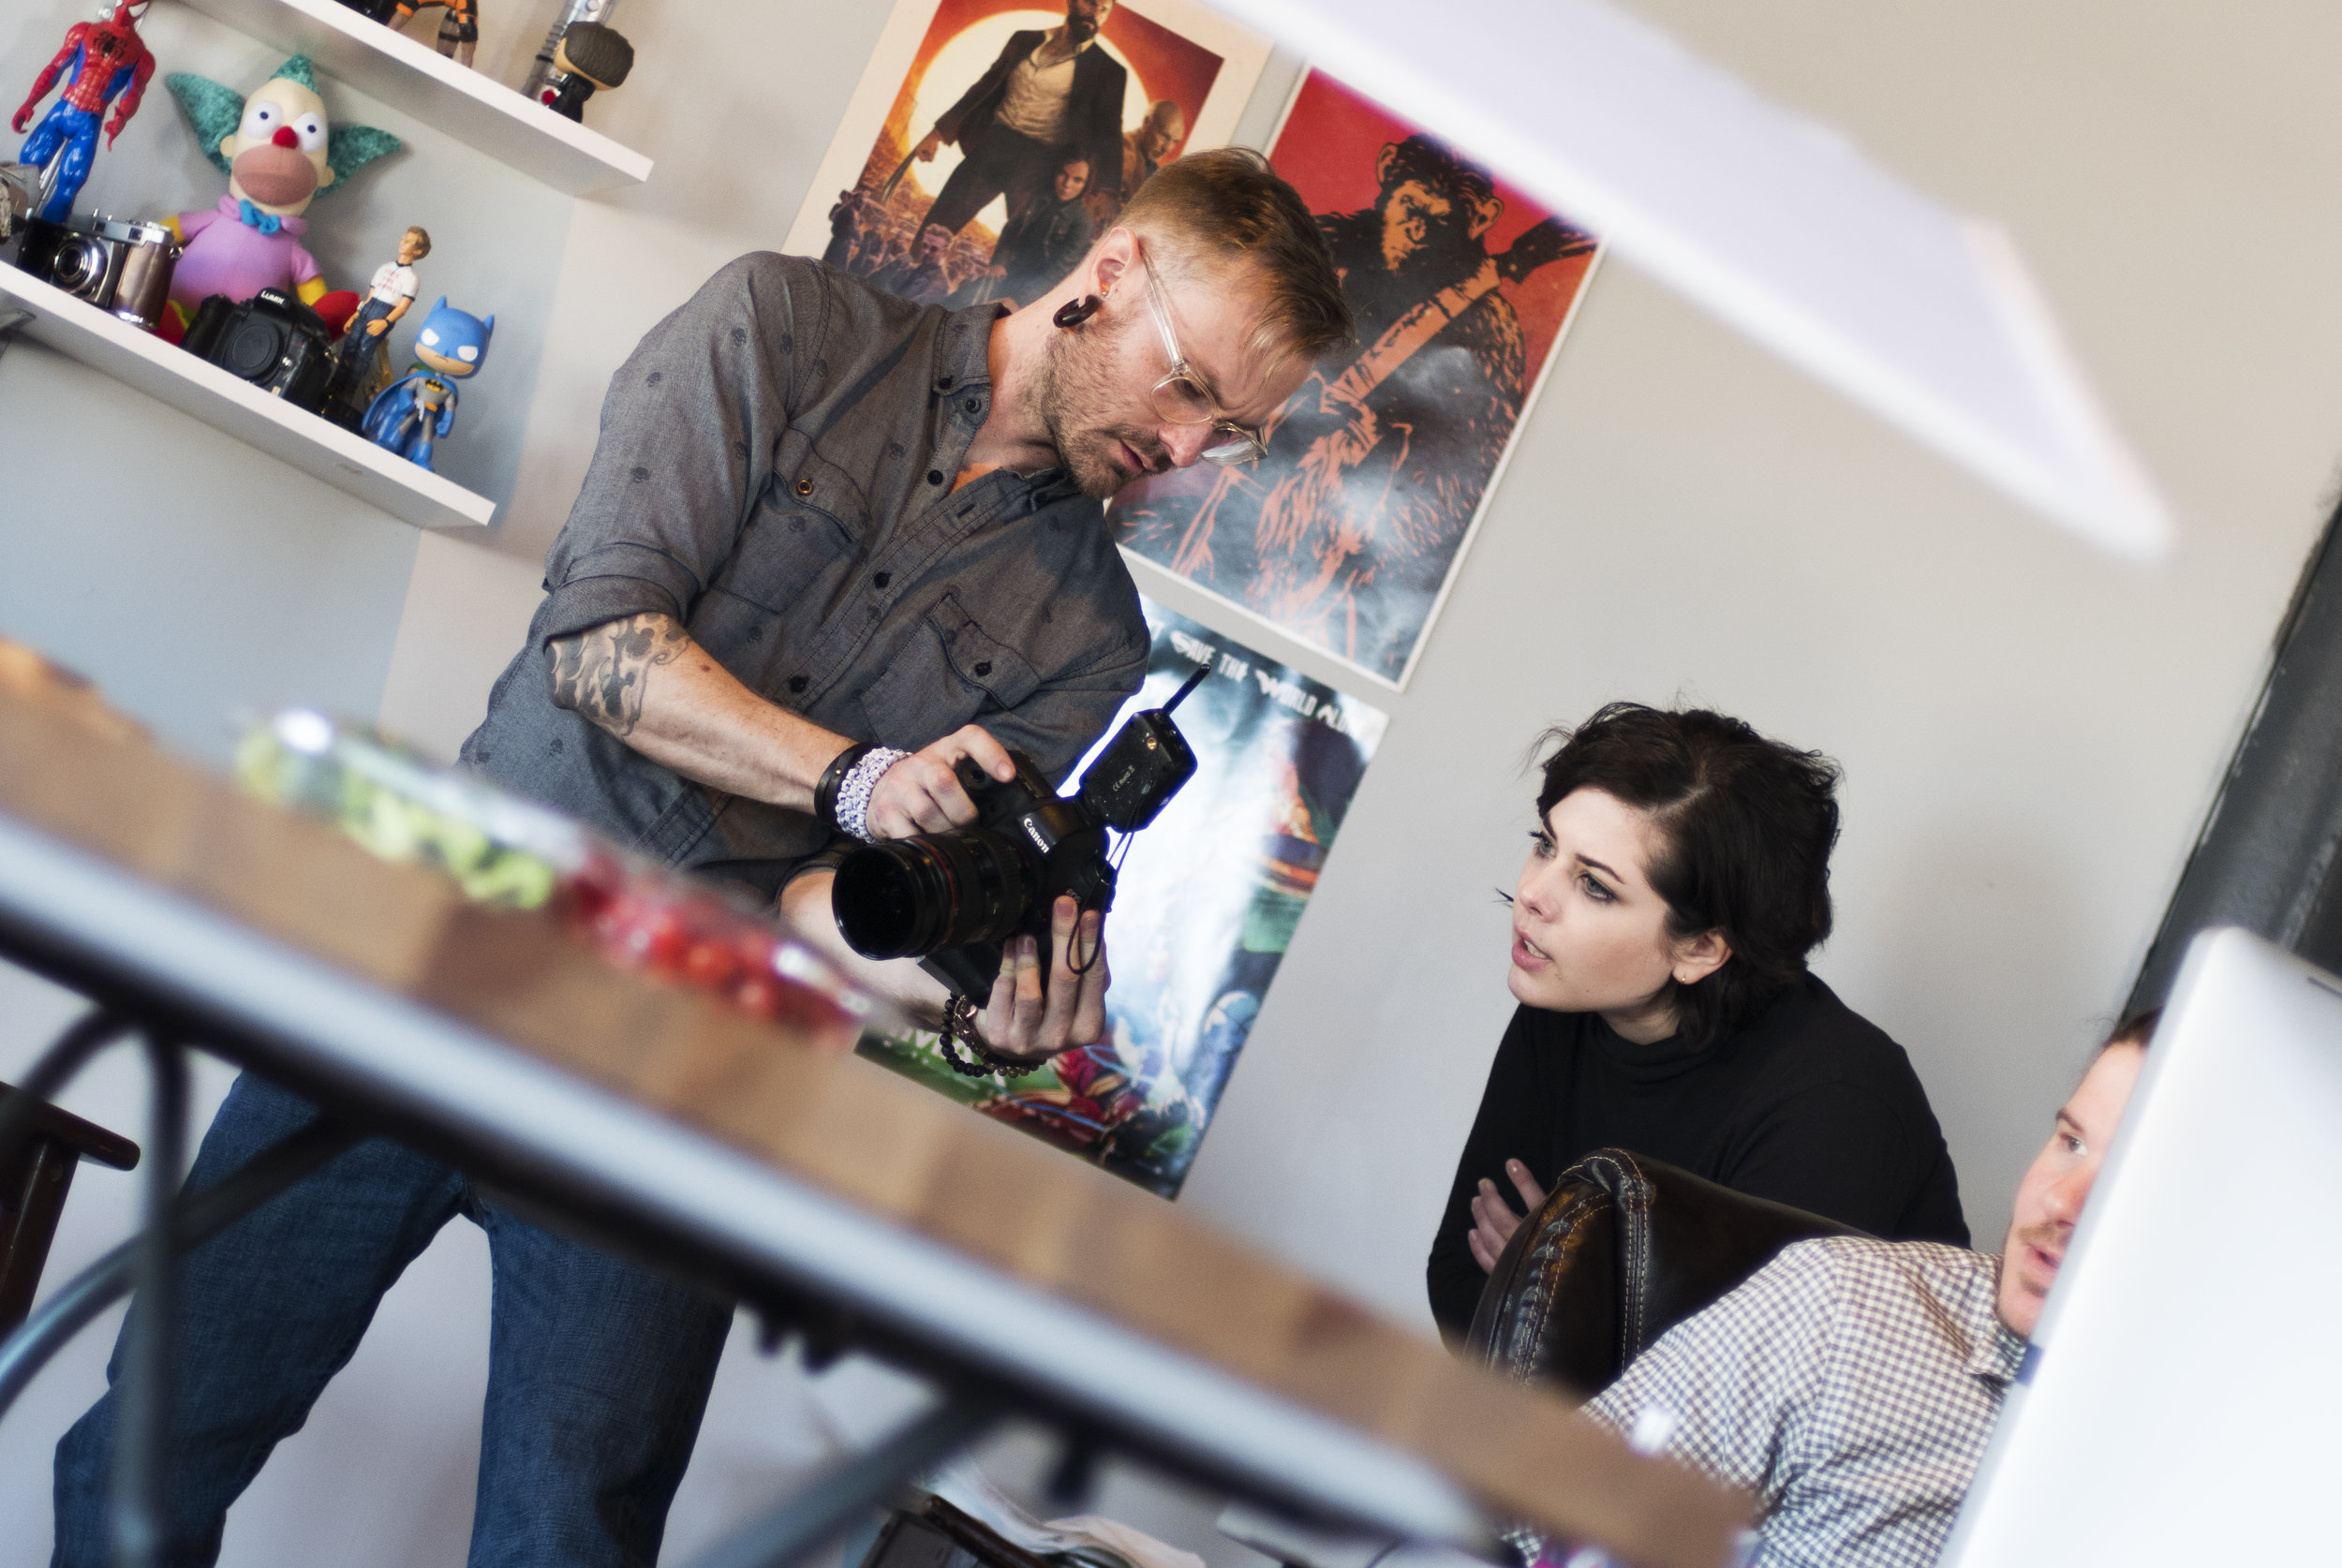 Directing the stock food photography shoot - I had the privilege of working with Allied Productions team to bring my vision for our food photography to life.(Image Courtesy of Allied Productions, pictured: Aaron McGrane &myself)